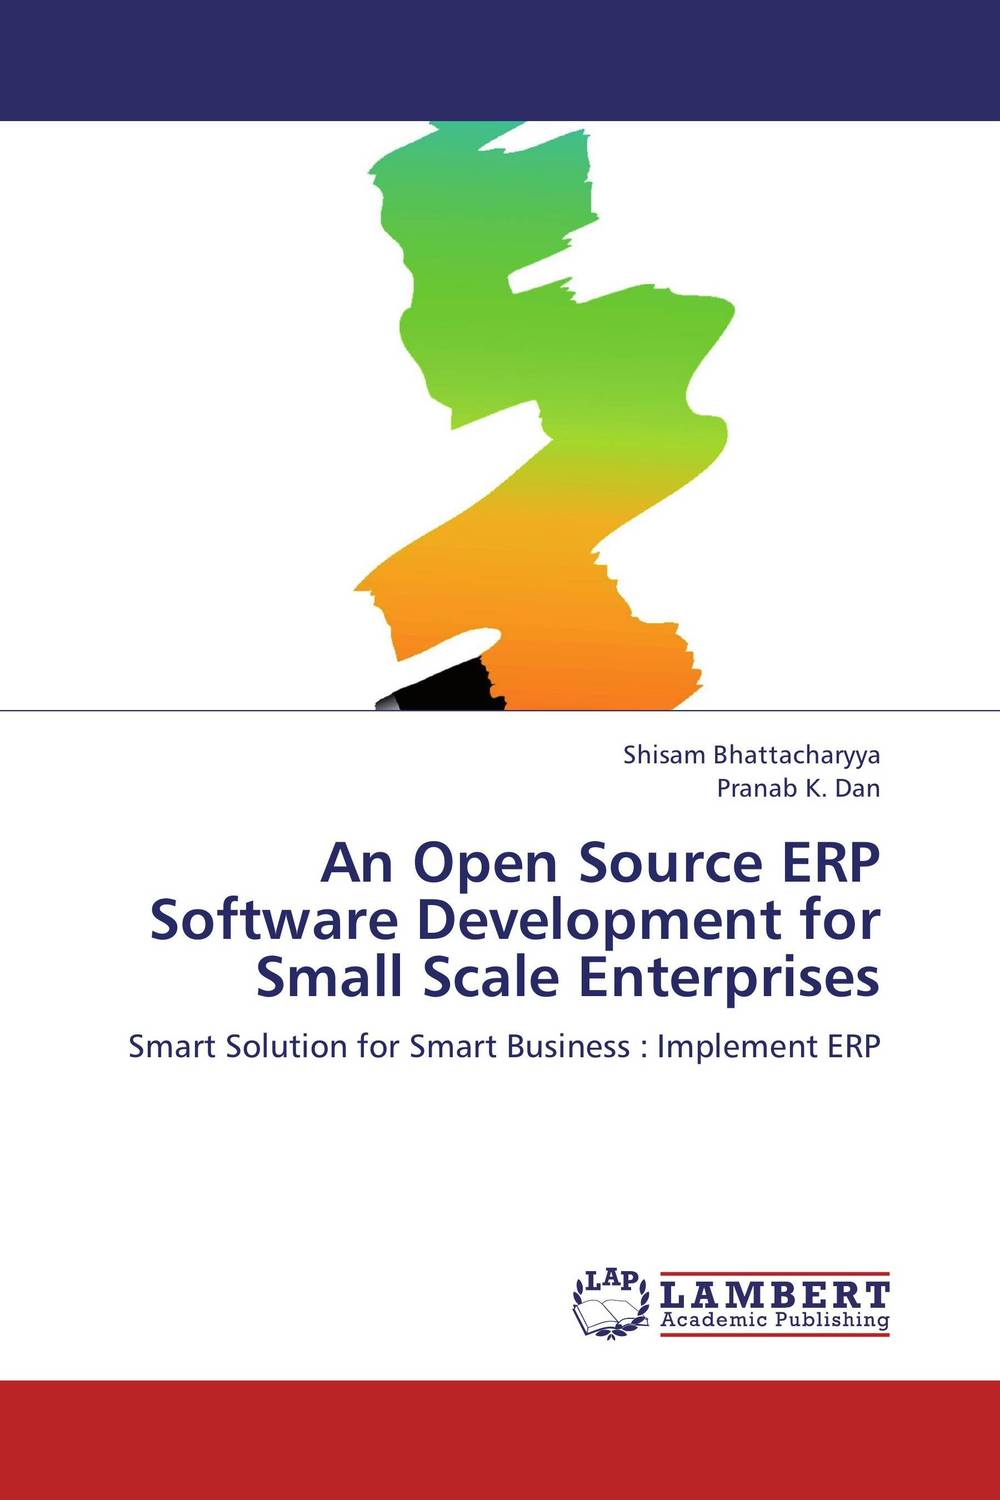 An Open Source ERP Software Development for Small Scale Enterprises assessing factors promoting open source software quality